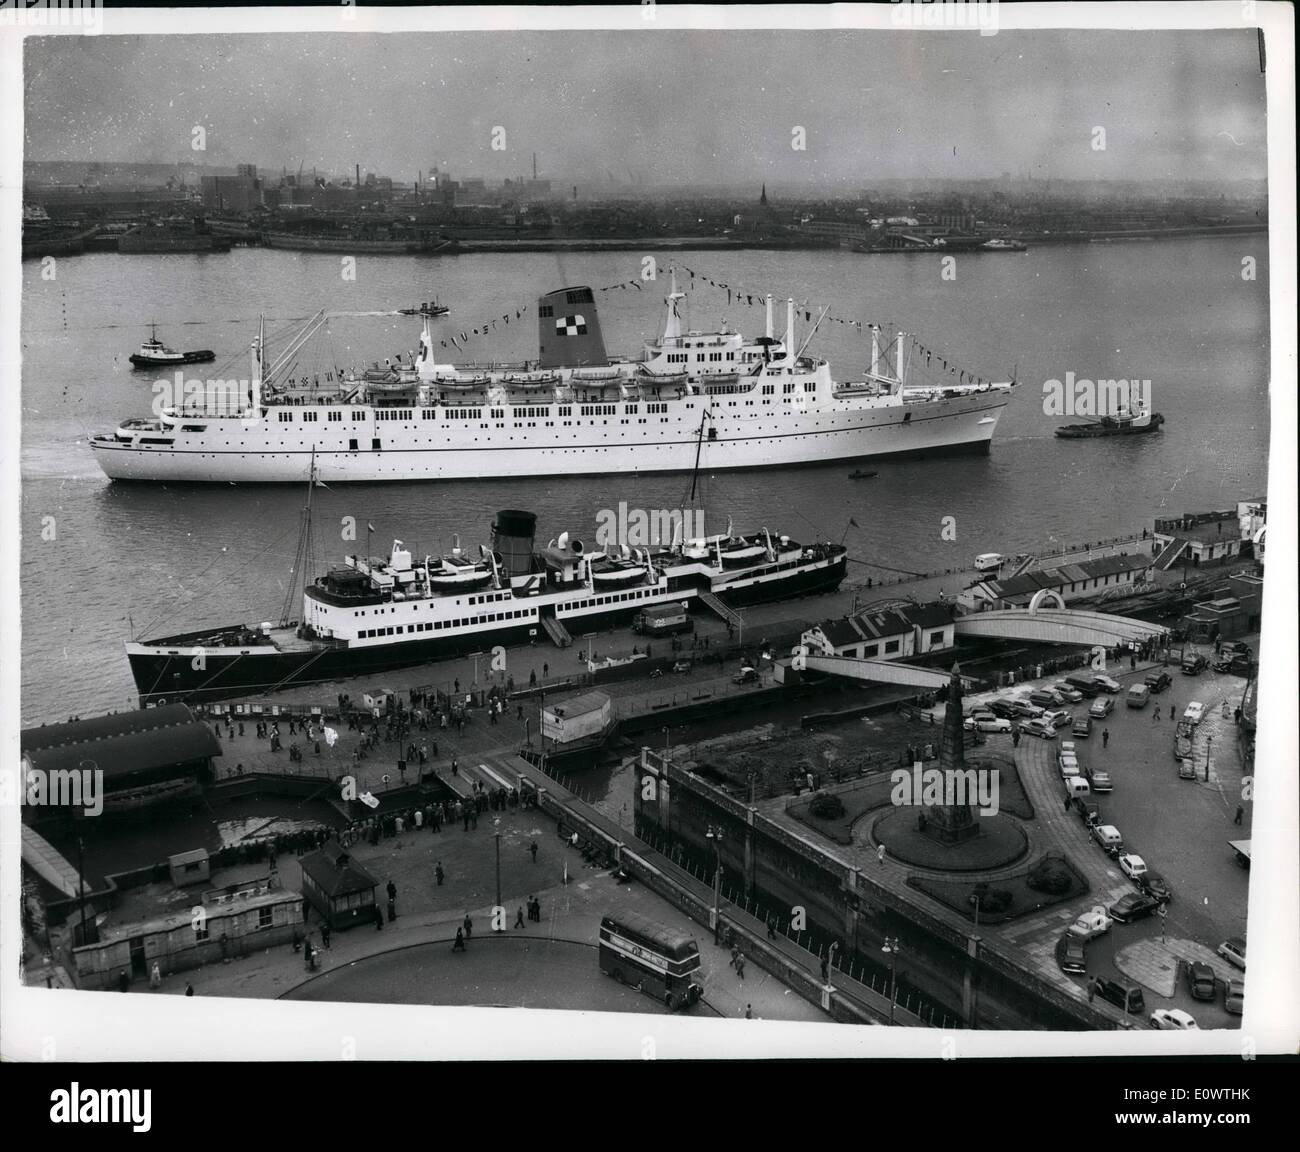 Apr. 04, 1964 - The New S.S. Empress Of Canada Leaves On Maiden Voyage: View of the new liner ''Empress of Canada'' ion the Mersey - as she leaves on her Maiden Voyage to Canada. The other Vessel tied up is the ''Twynswold'' - the isle of Man Vessel. - Stock Image